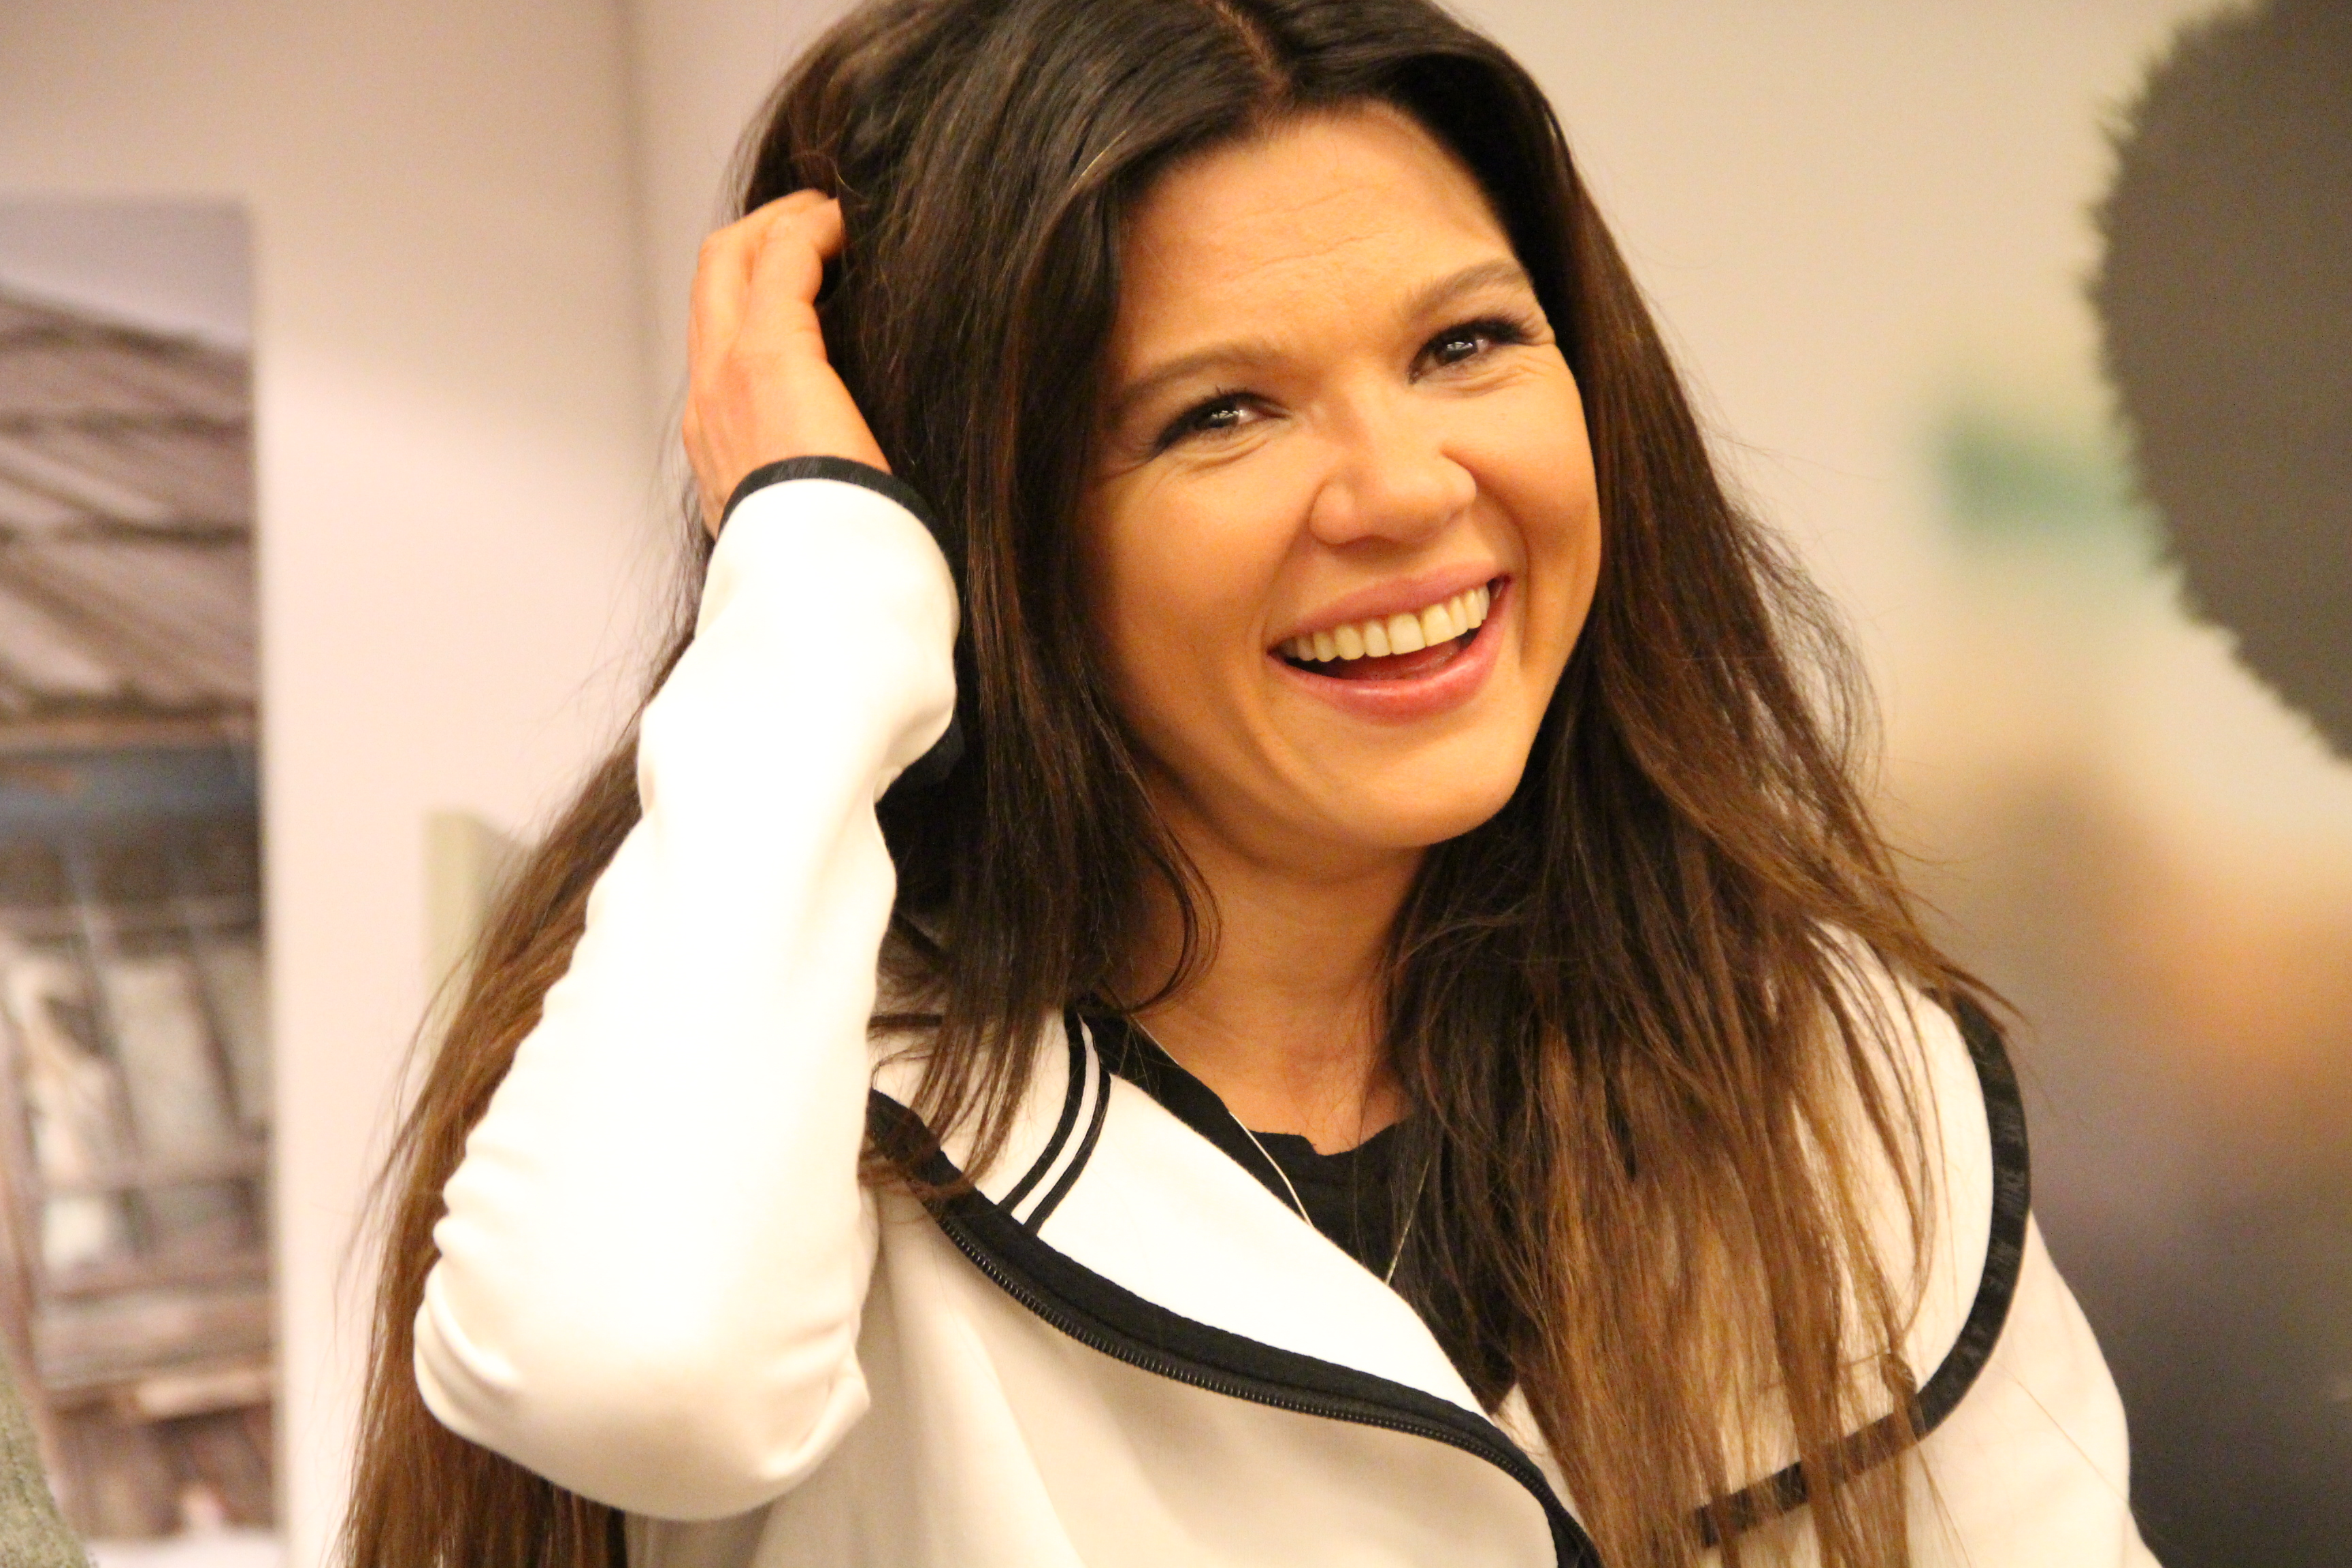 The 5-year old daughter of father (?) and mother(?) Ruslana in 2019 photo. Ruslana earned a  million dollar salary - leaving the net worth at 2 million in 2019